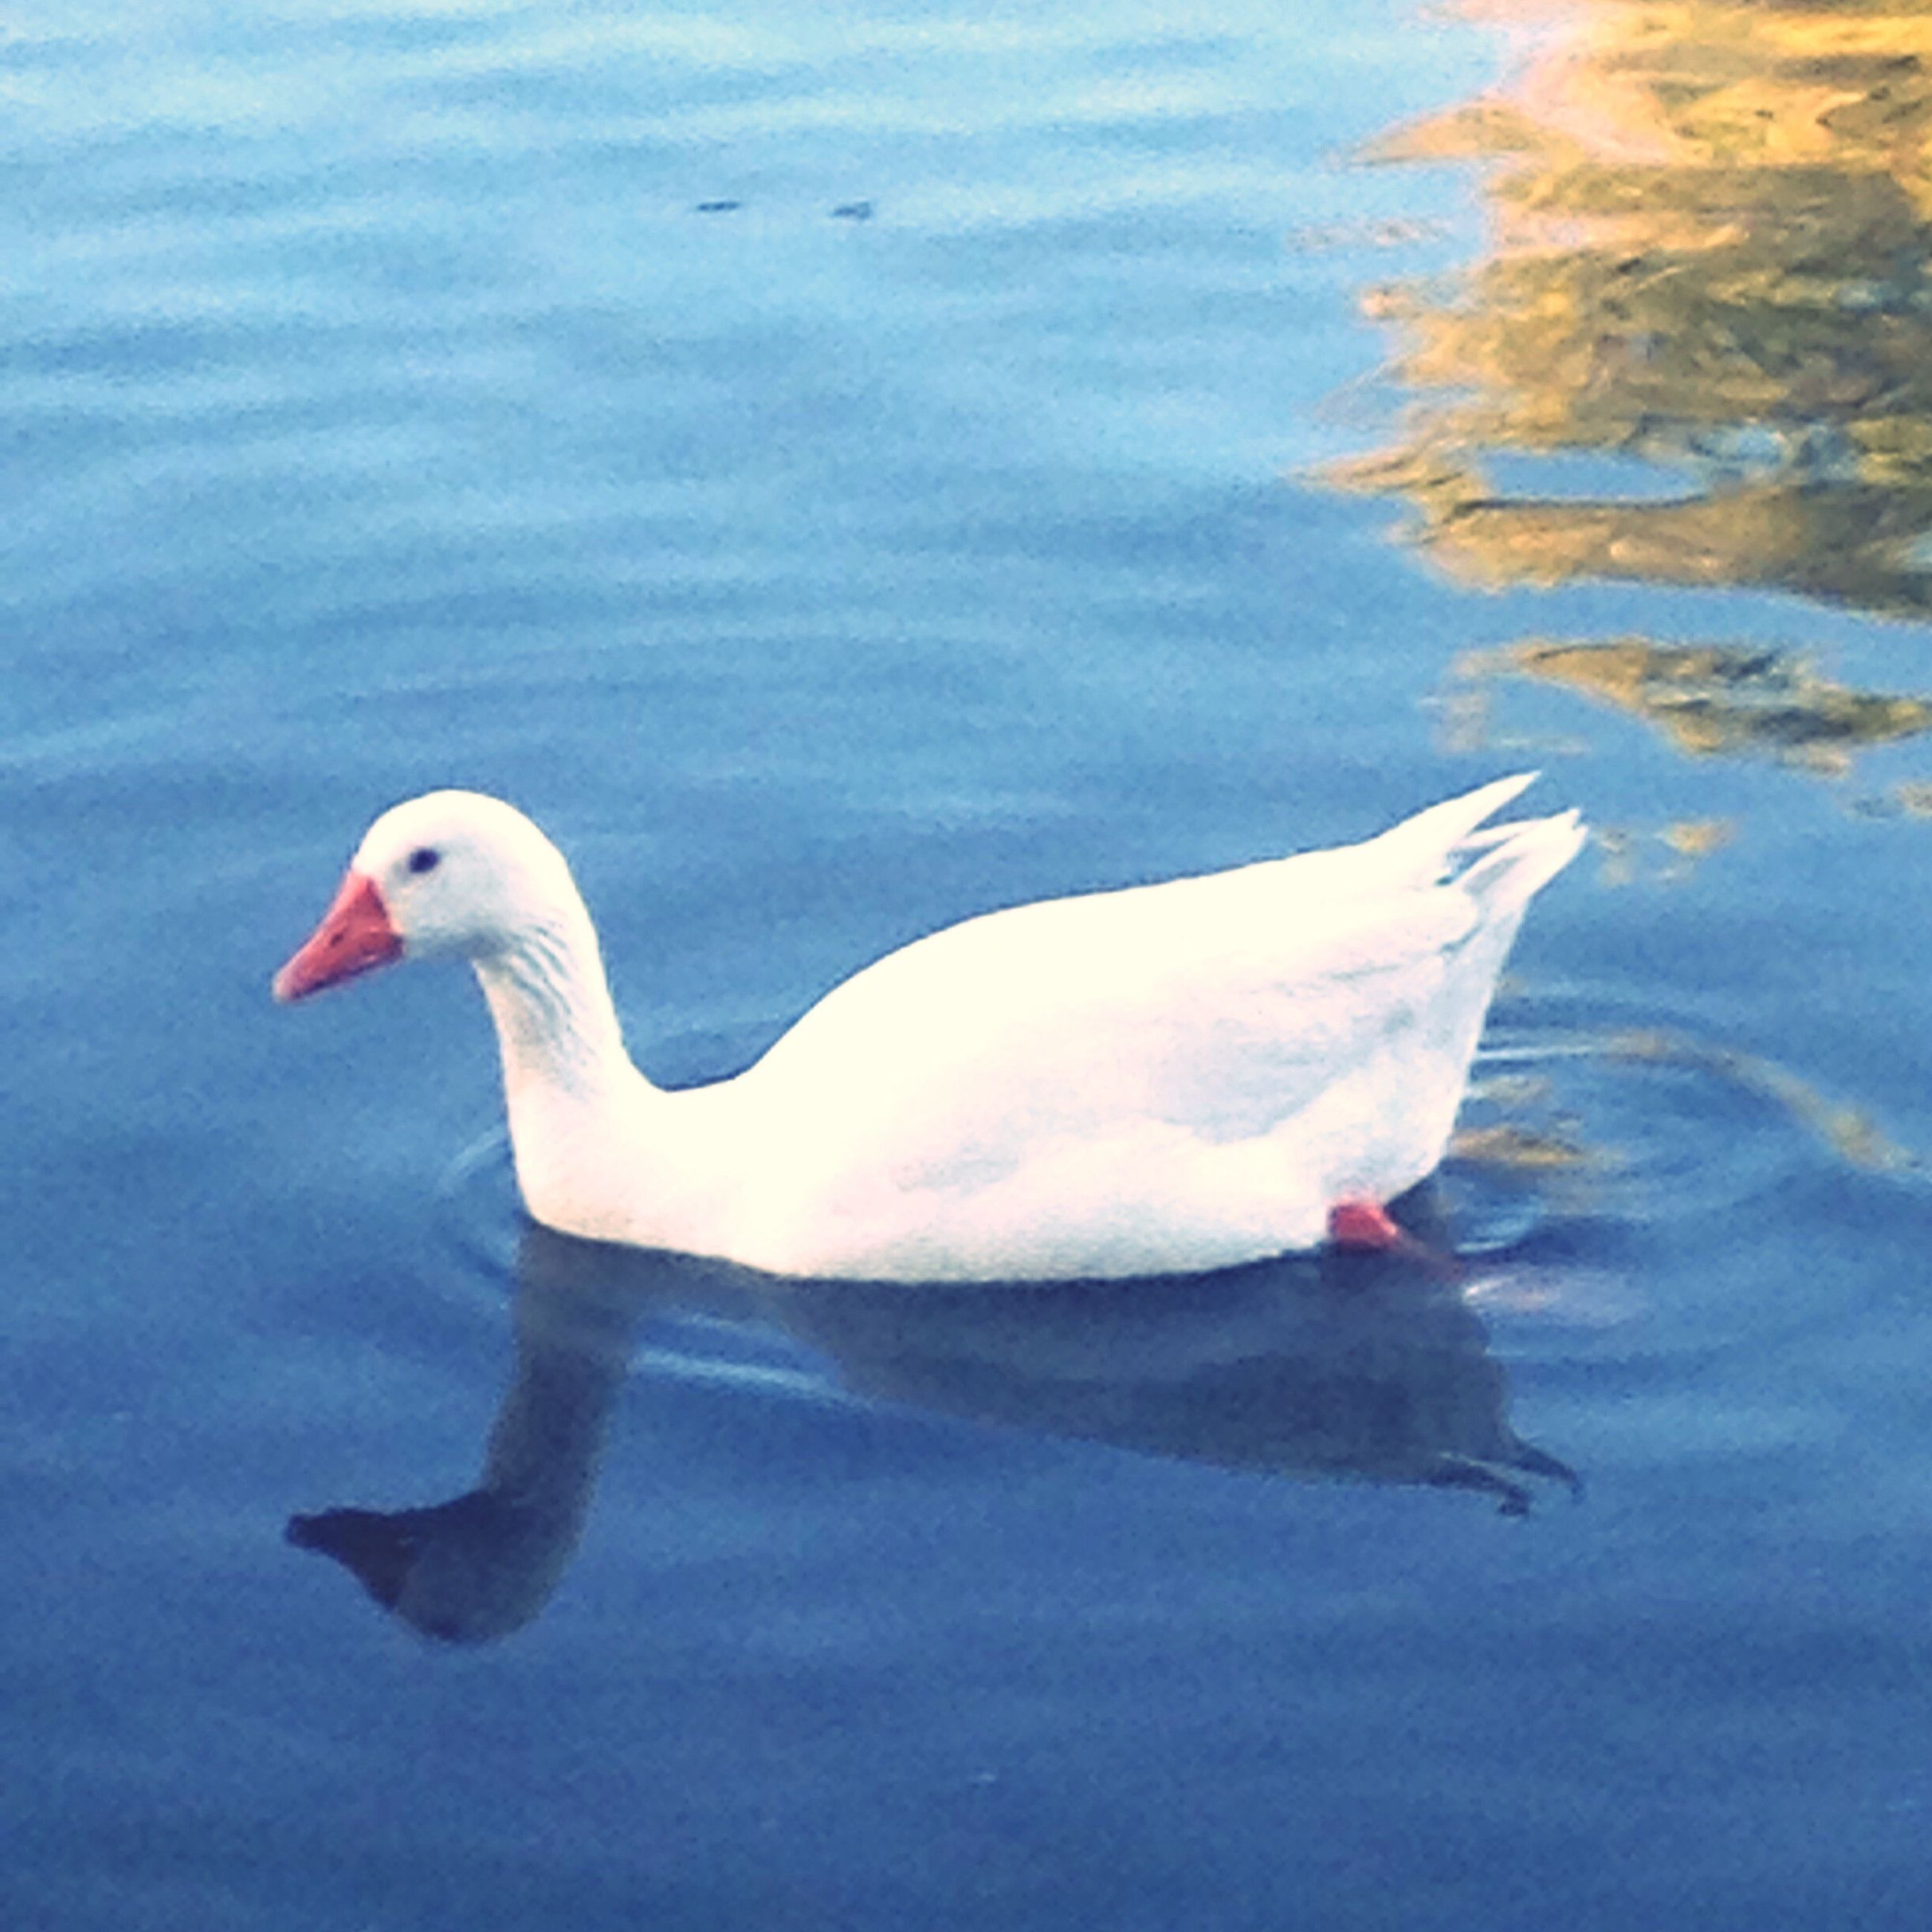 bird, water, wildlife, lake, nature, rippled, outdoors, no people, beauty in nature, day, close-up, tranquility